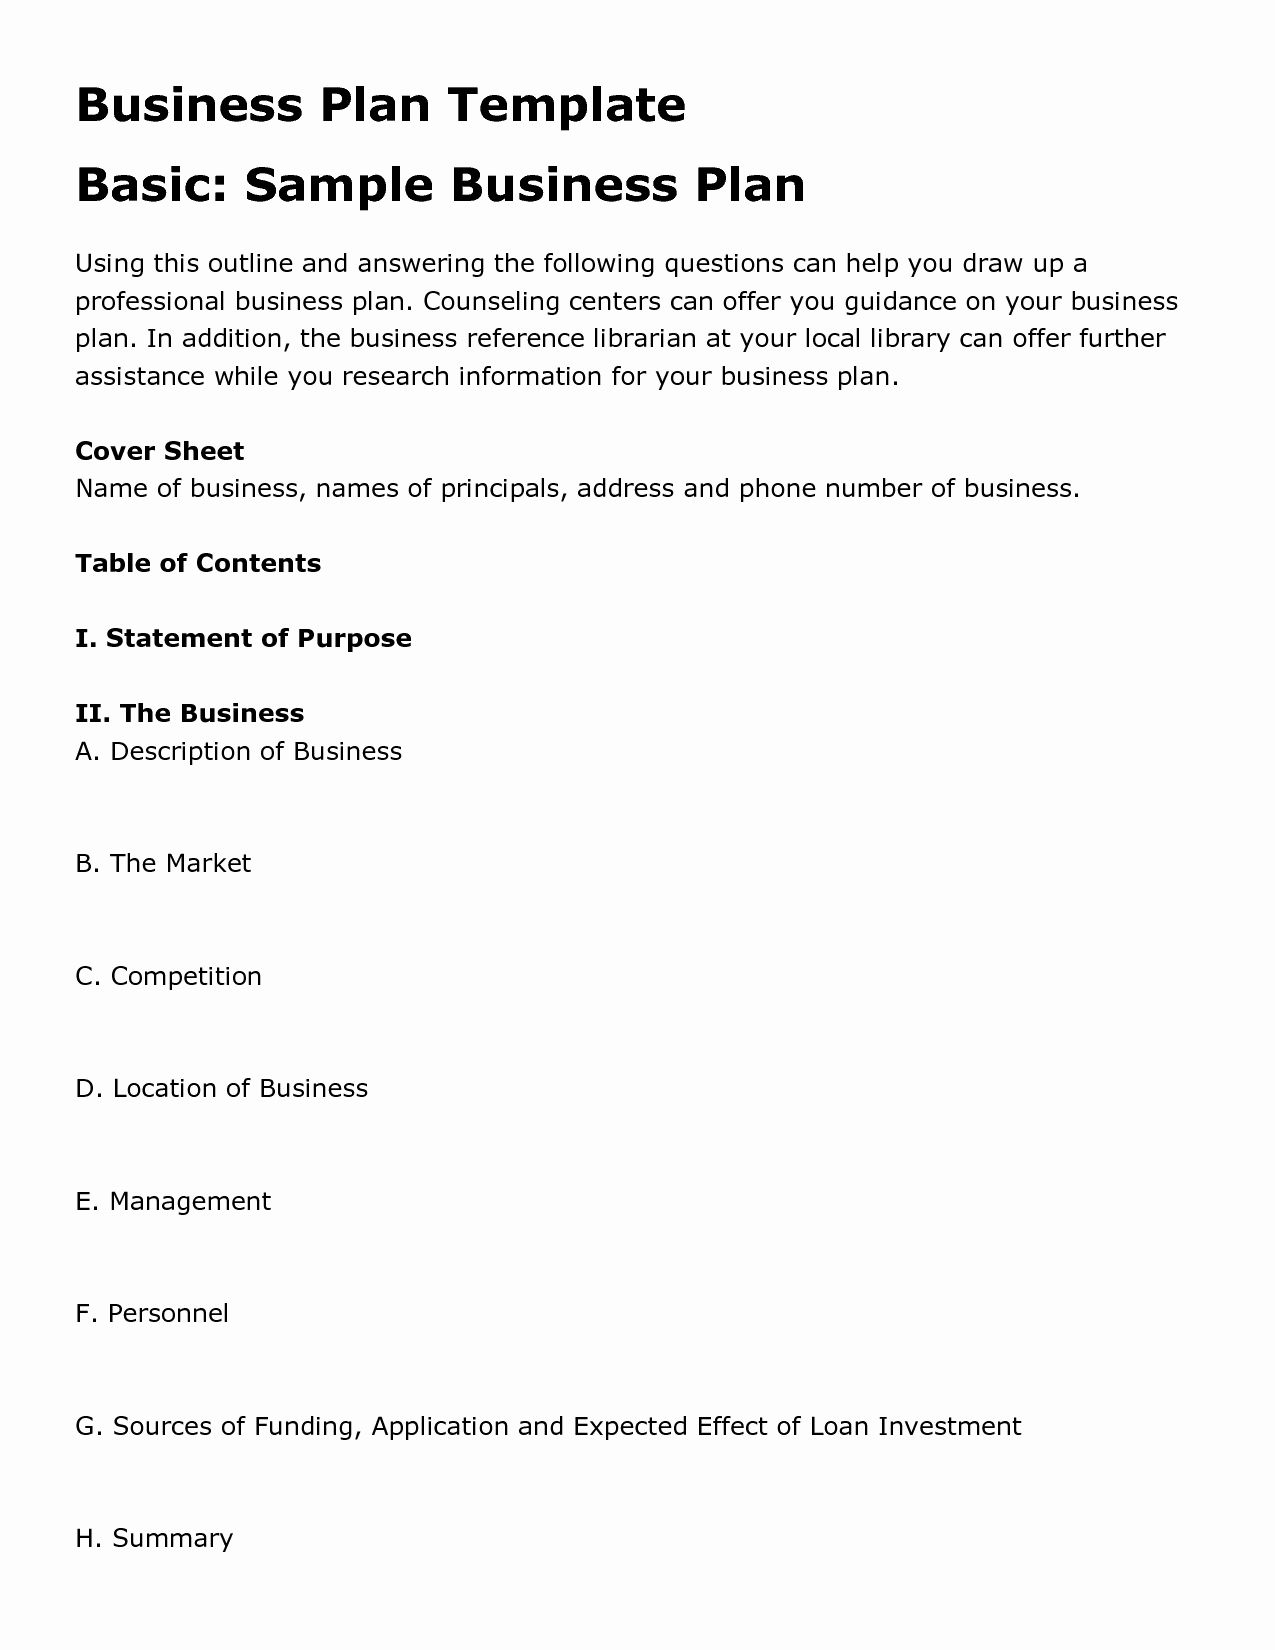 Business Plan Template Free Unique Simple Business Plan